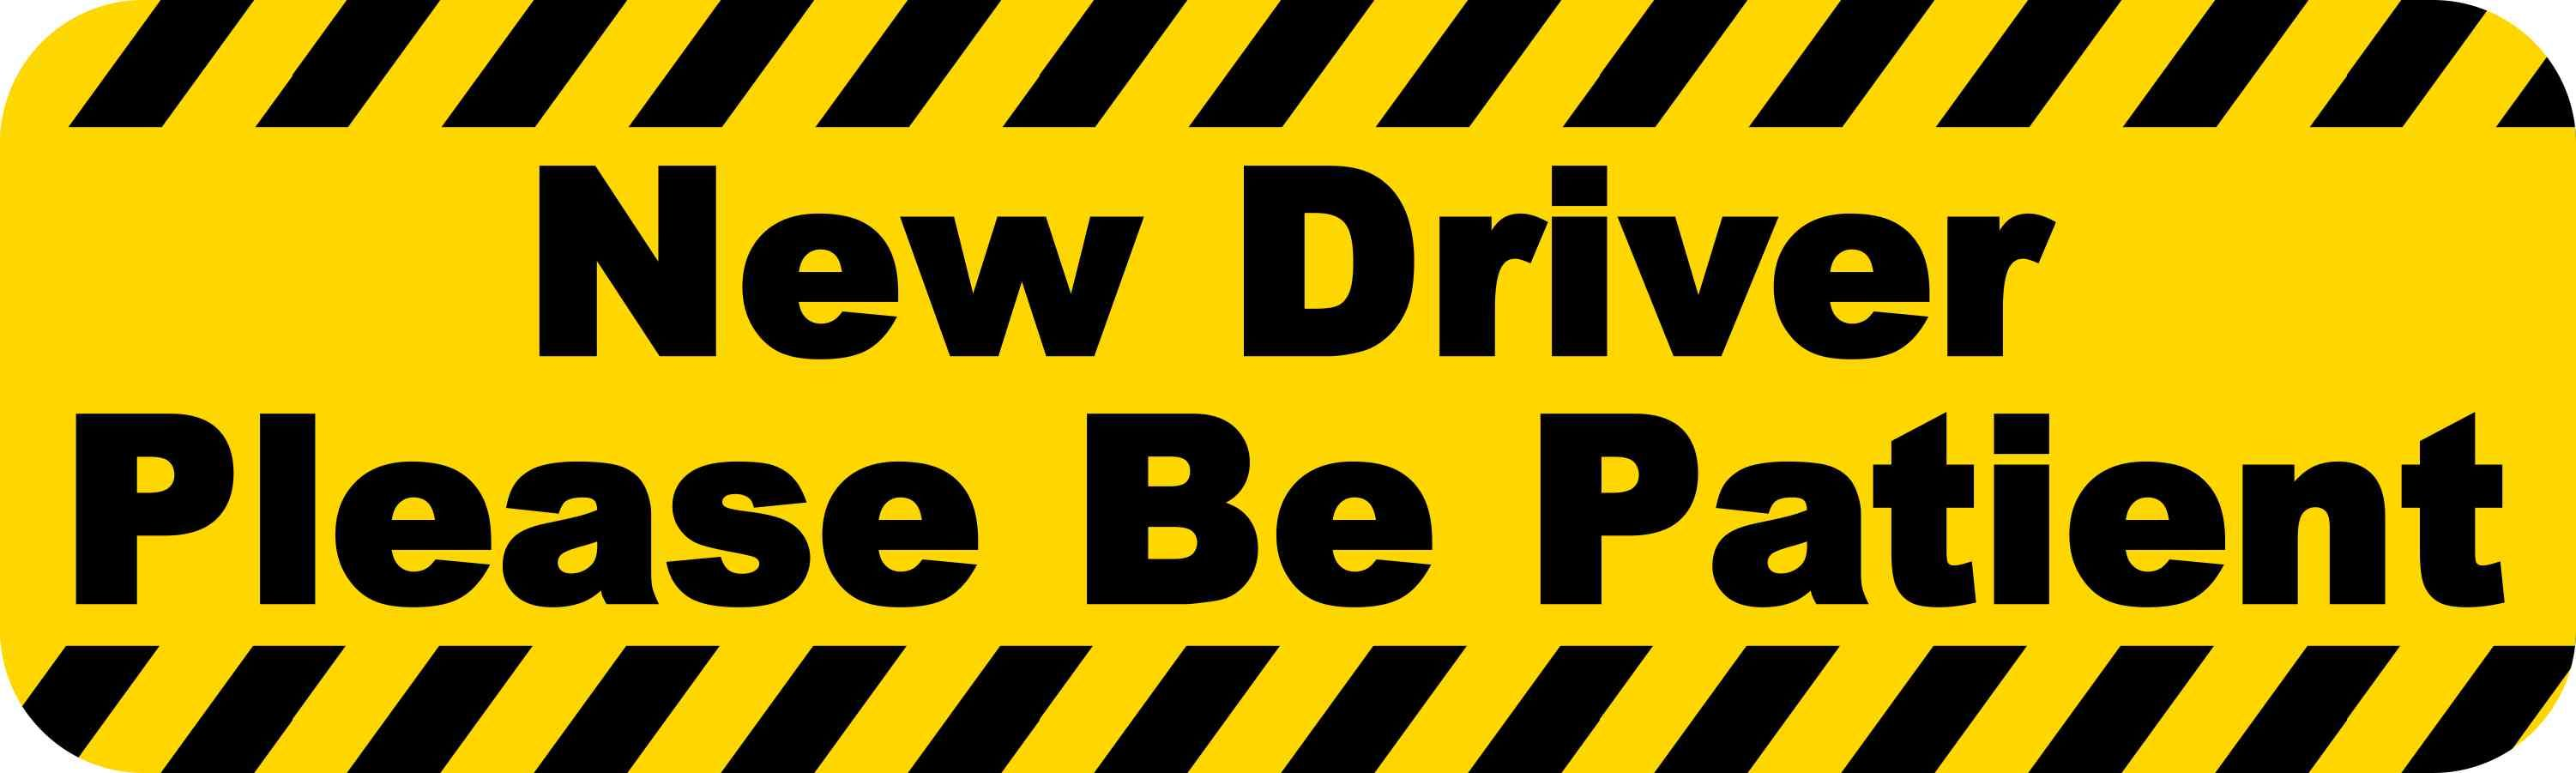 20in X 6in Large New Driver Sticker Vinyl Vehicle Window Decal Stickers New Drivers Magnetic Car Signs Vinyl Car Stickers [ 901 x 3003 Pixel ]